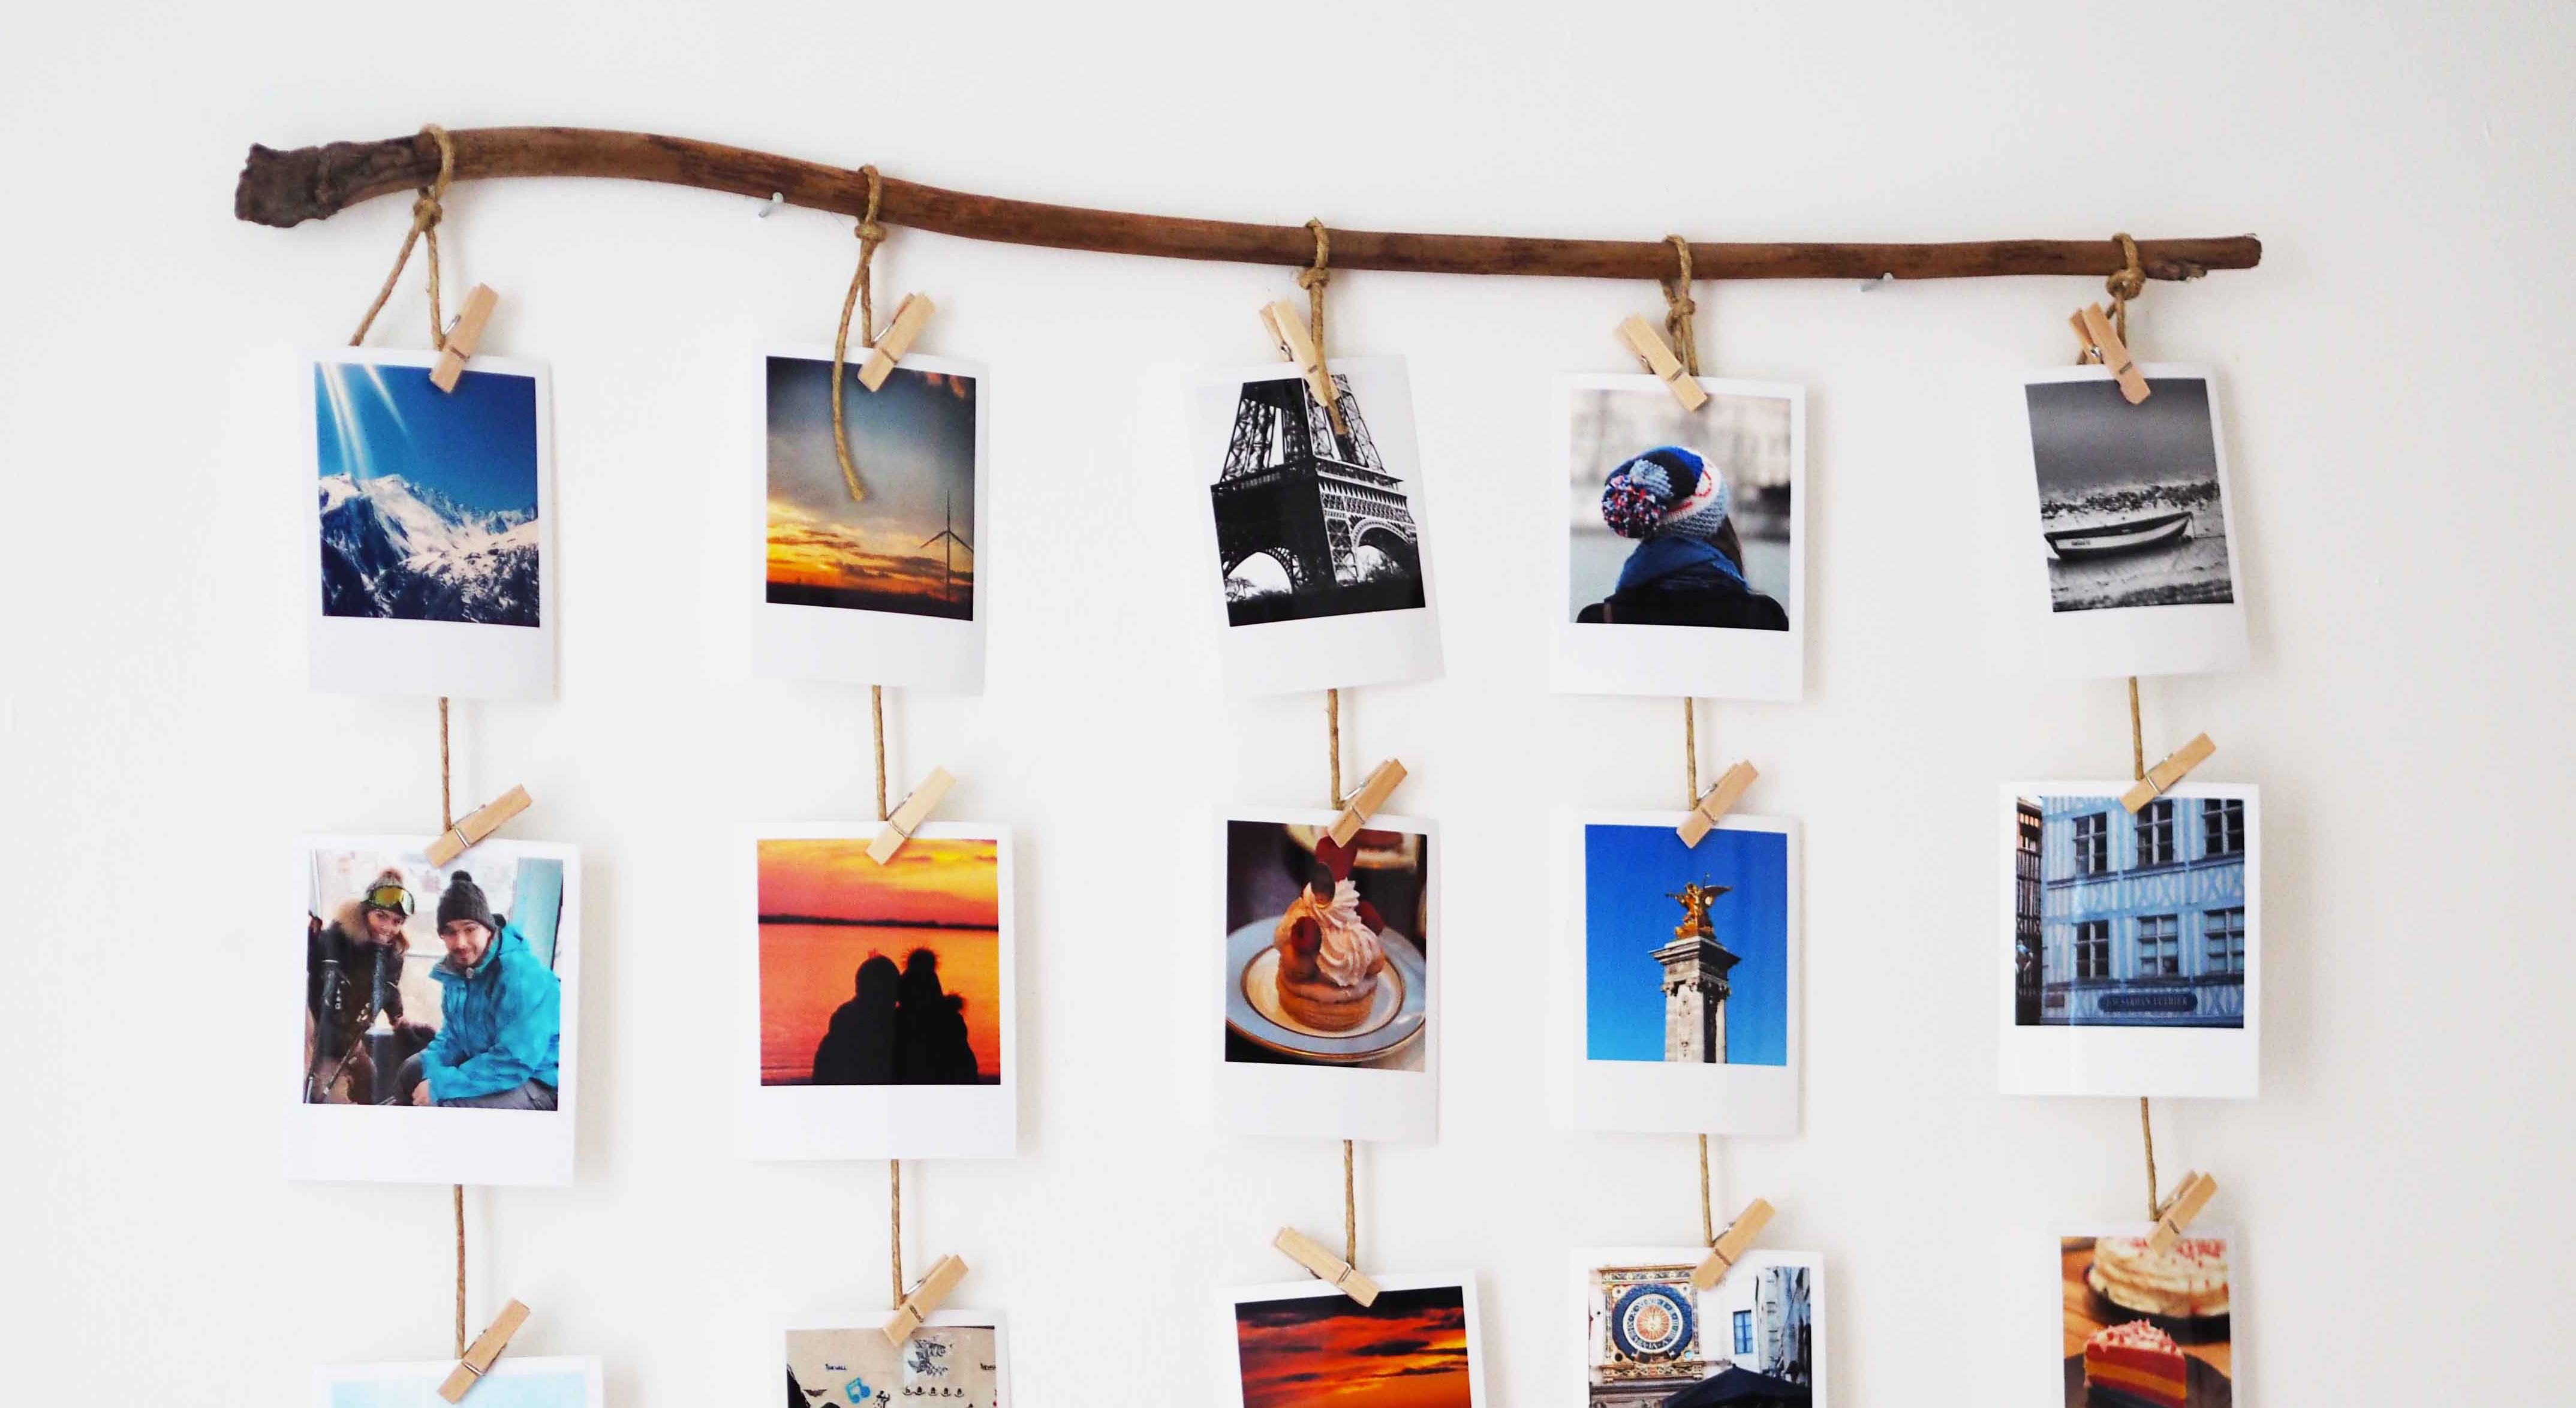 Accroche Photo Diy Comment Accrocher Ses Photos Polaroïd Like A Bobo